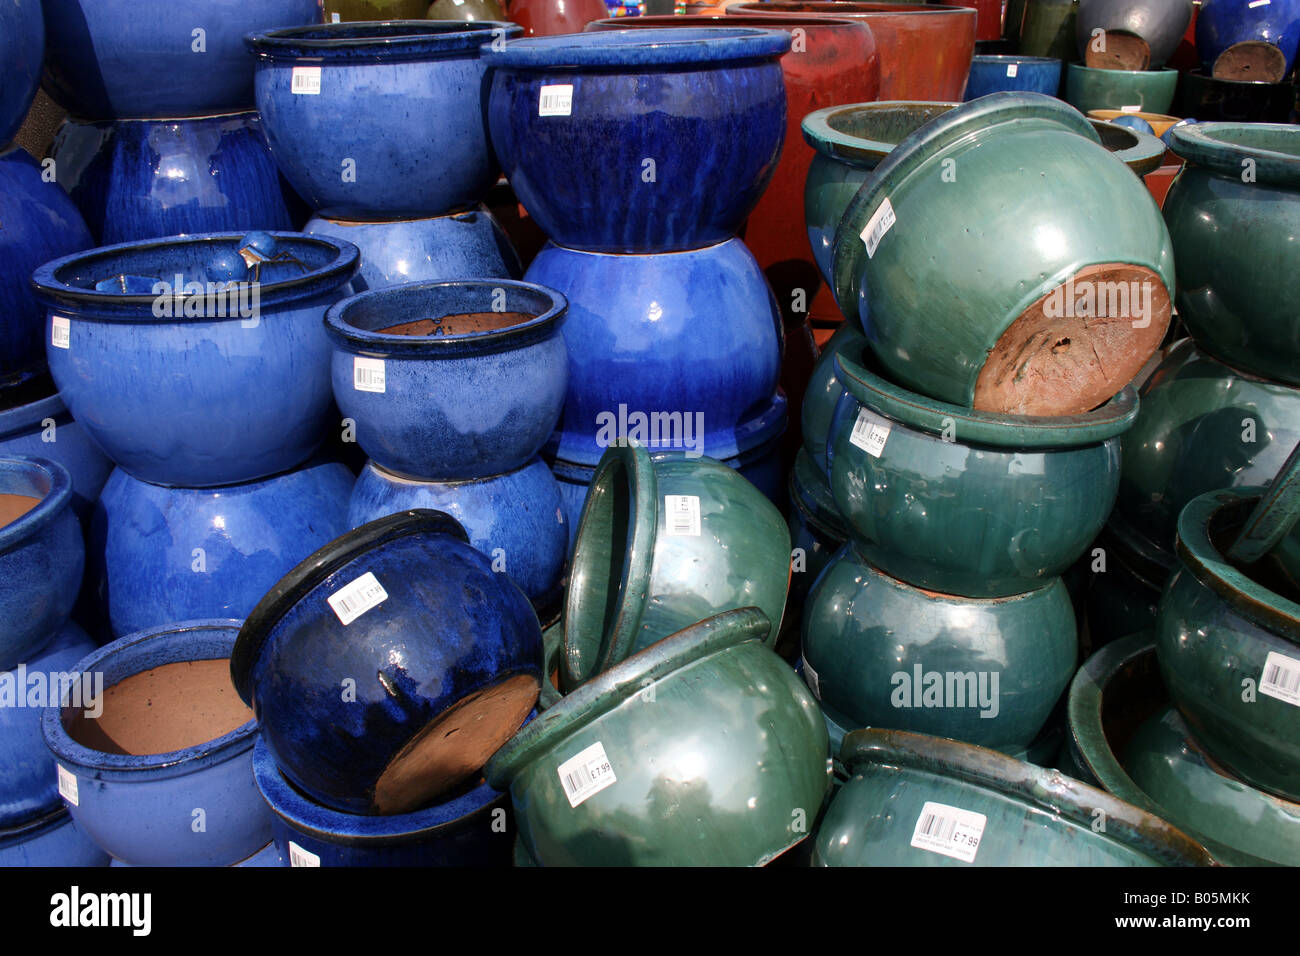 china blue and jade green glazed ceramic garden flower pots